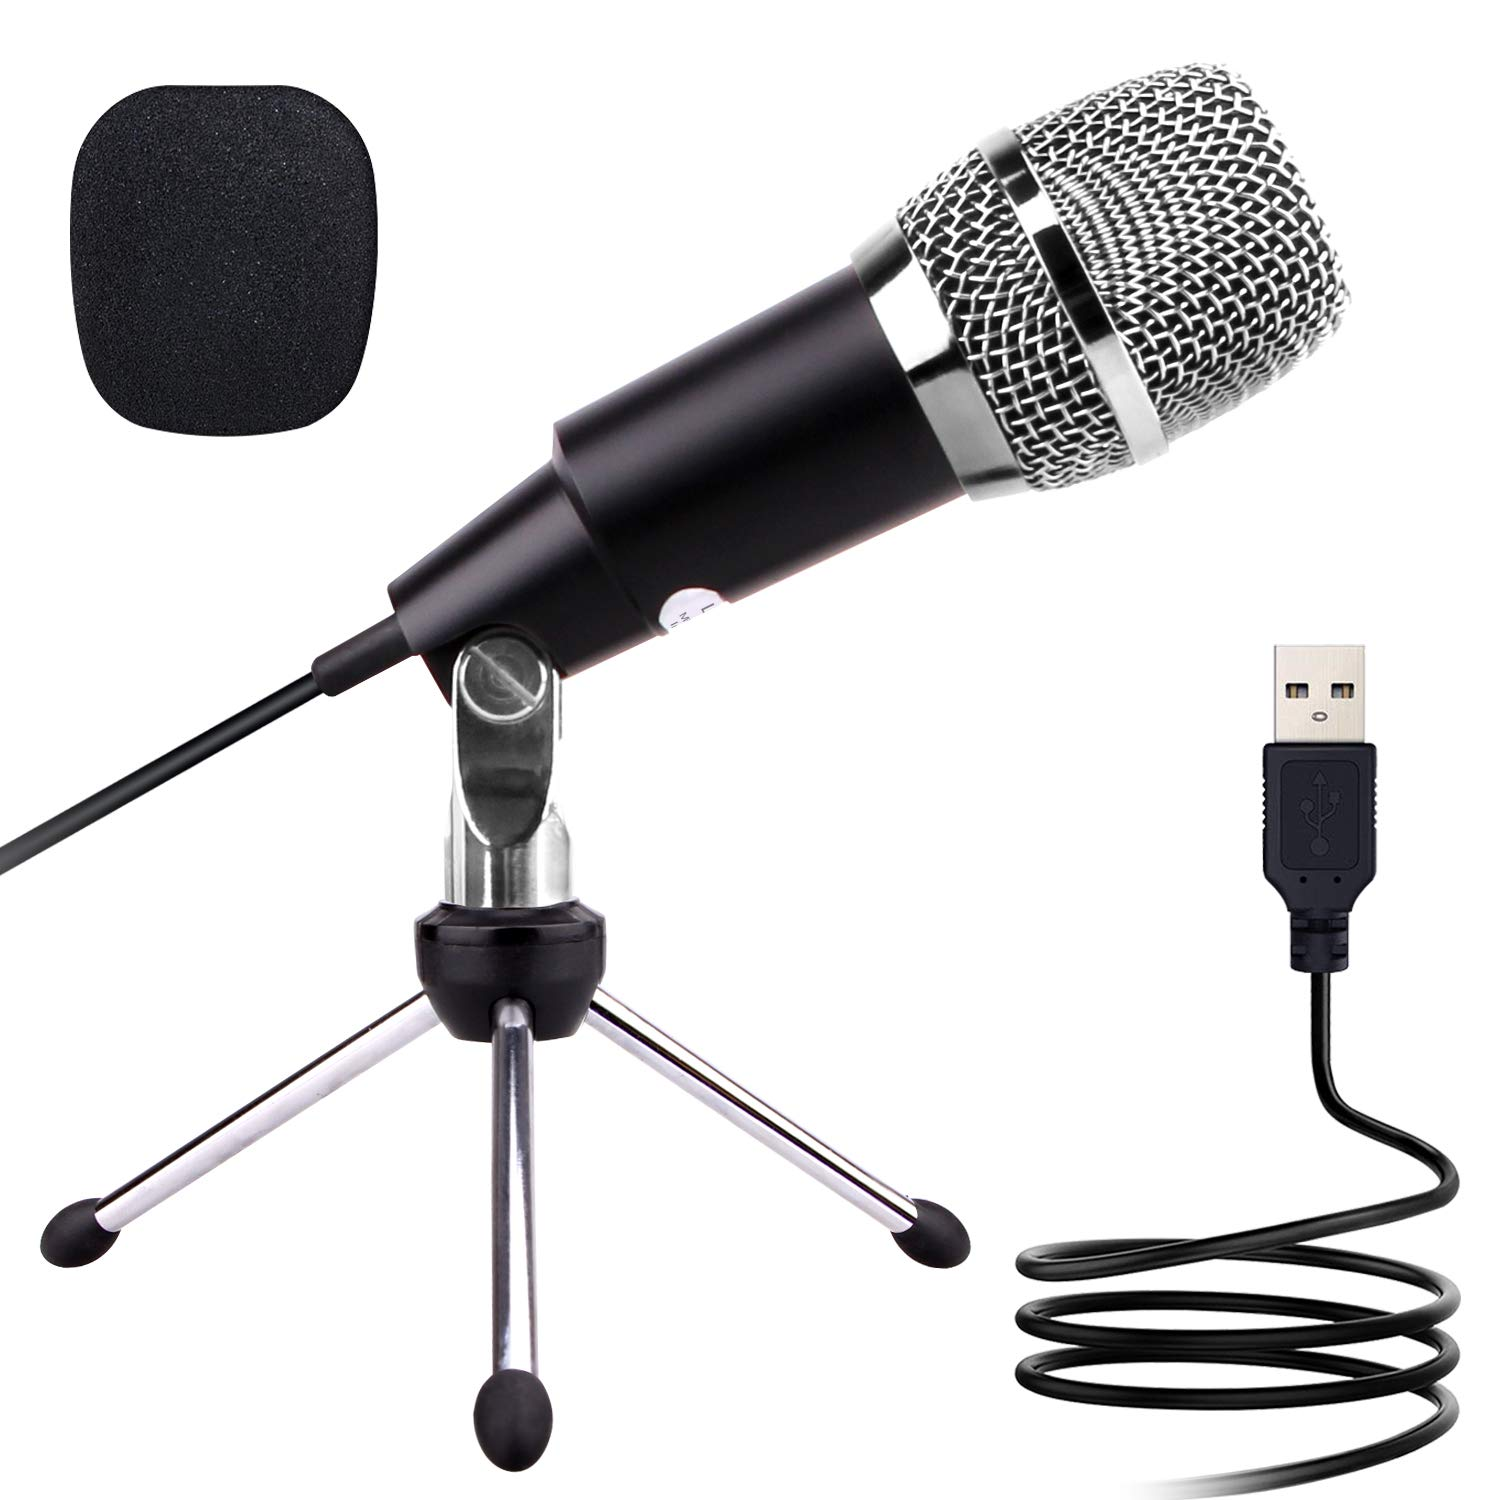 USB Microphone, LATZZ Conference Microphone, Plug & Play USB Condenser Microphone Compatible Mac and Windows Computer for Skype, Recording, YouTube, Podcast, Games